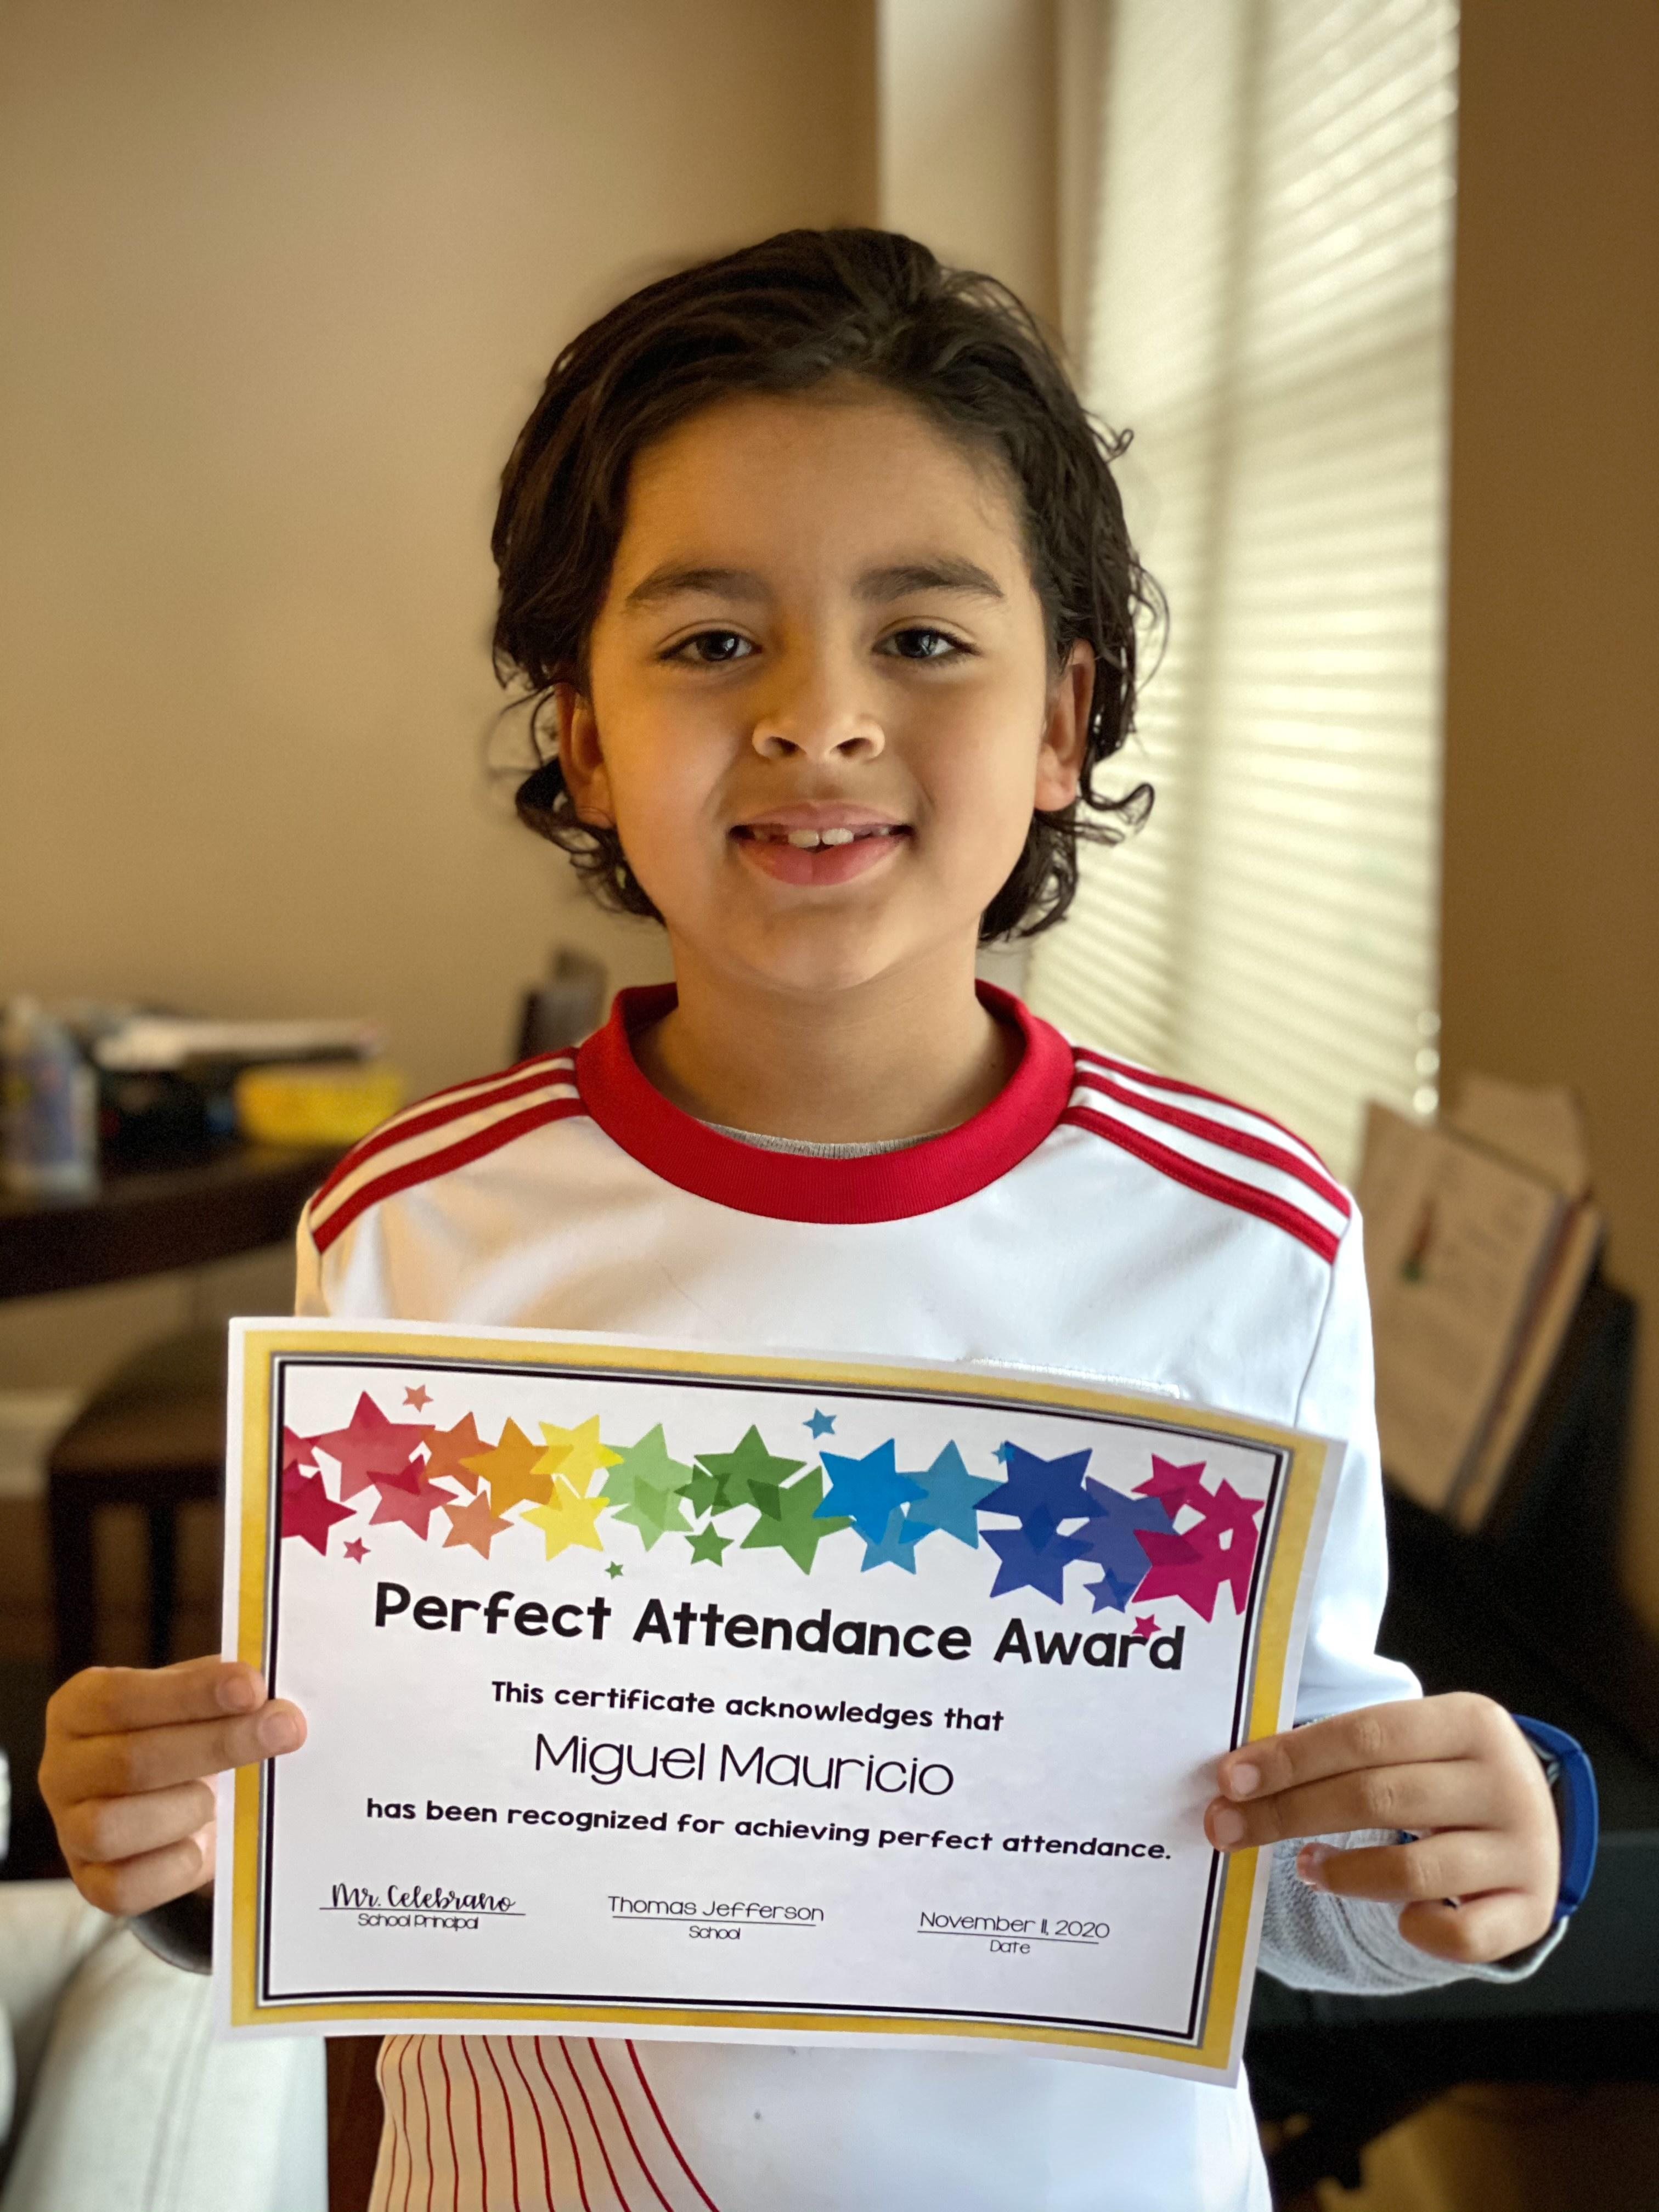 Miguel Mauricio holding perfect attendance certificate